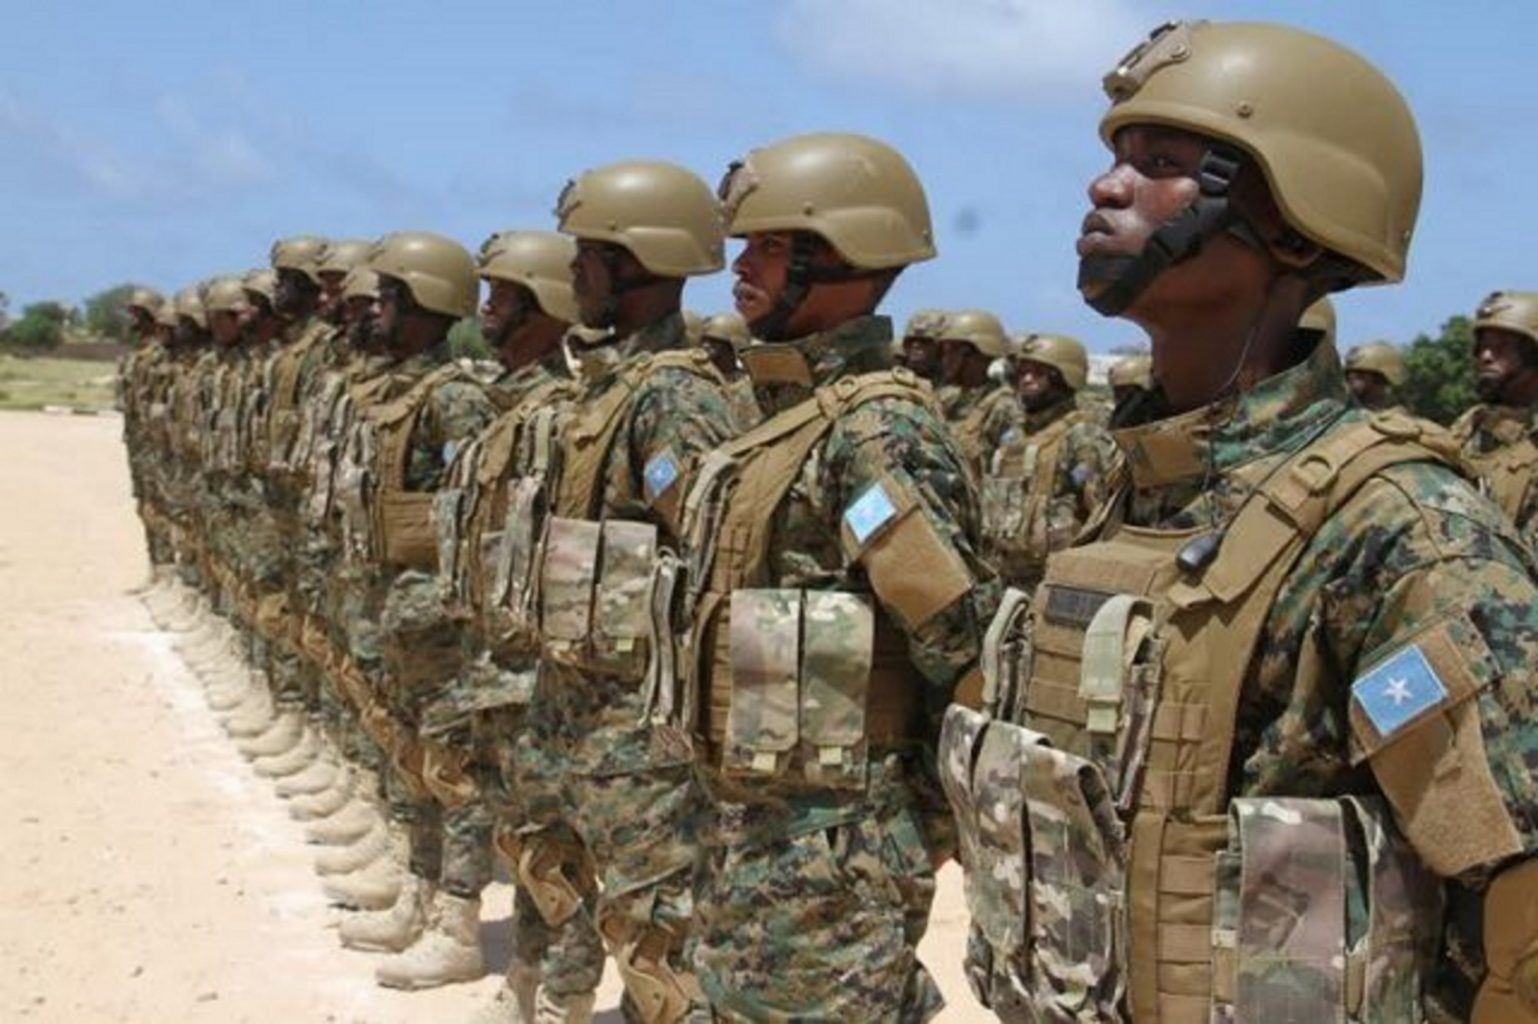 Somalia begins military reforms following rising terrorist attacks